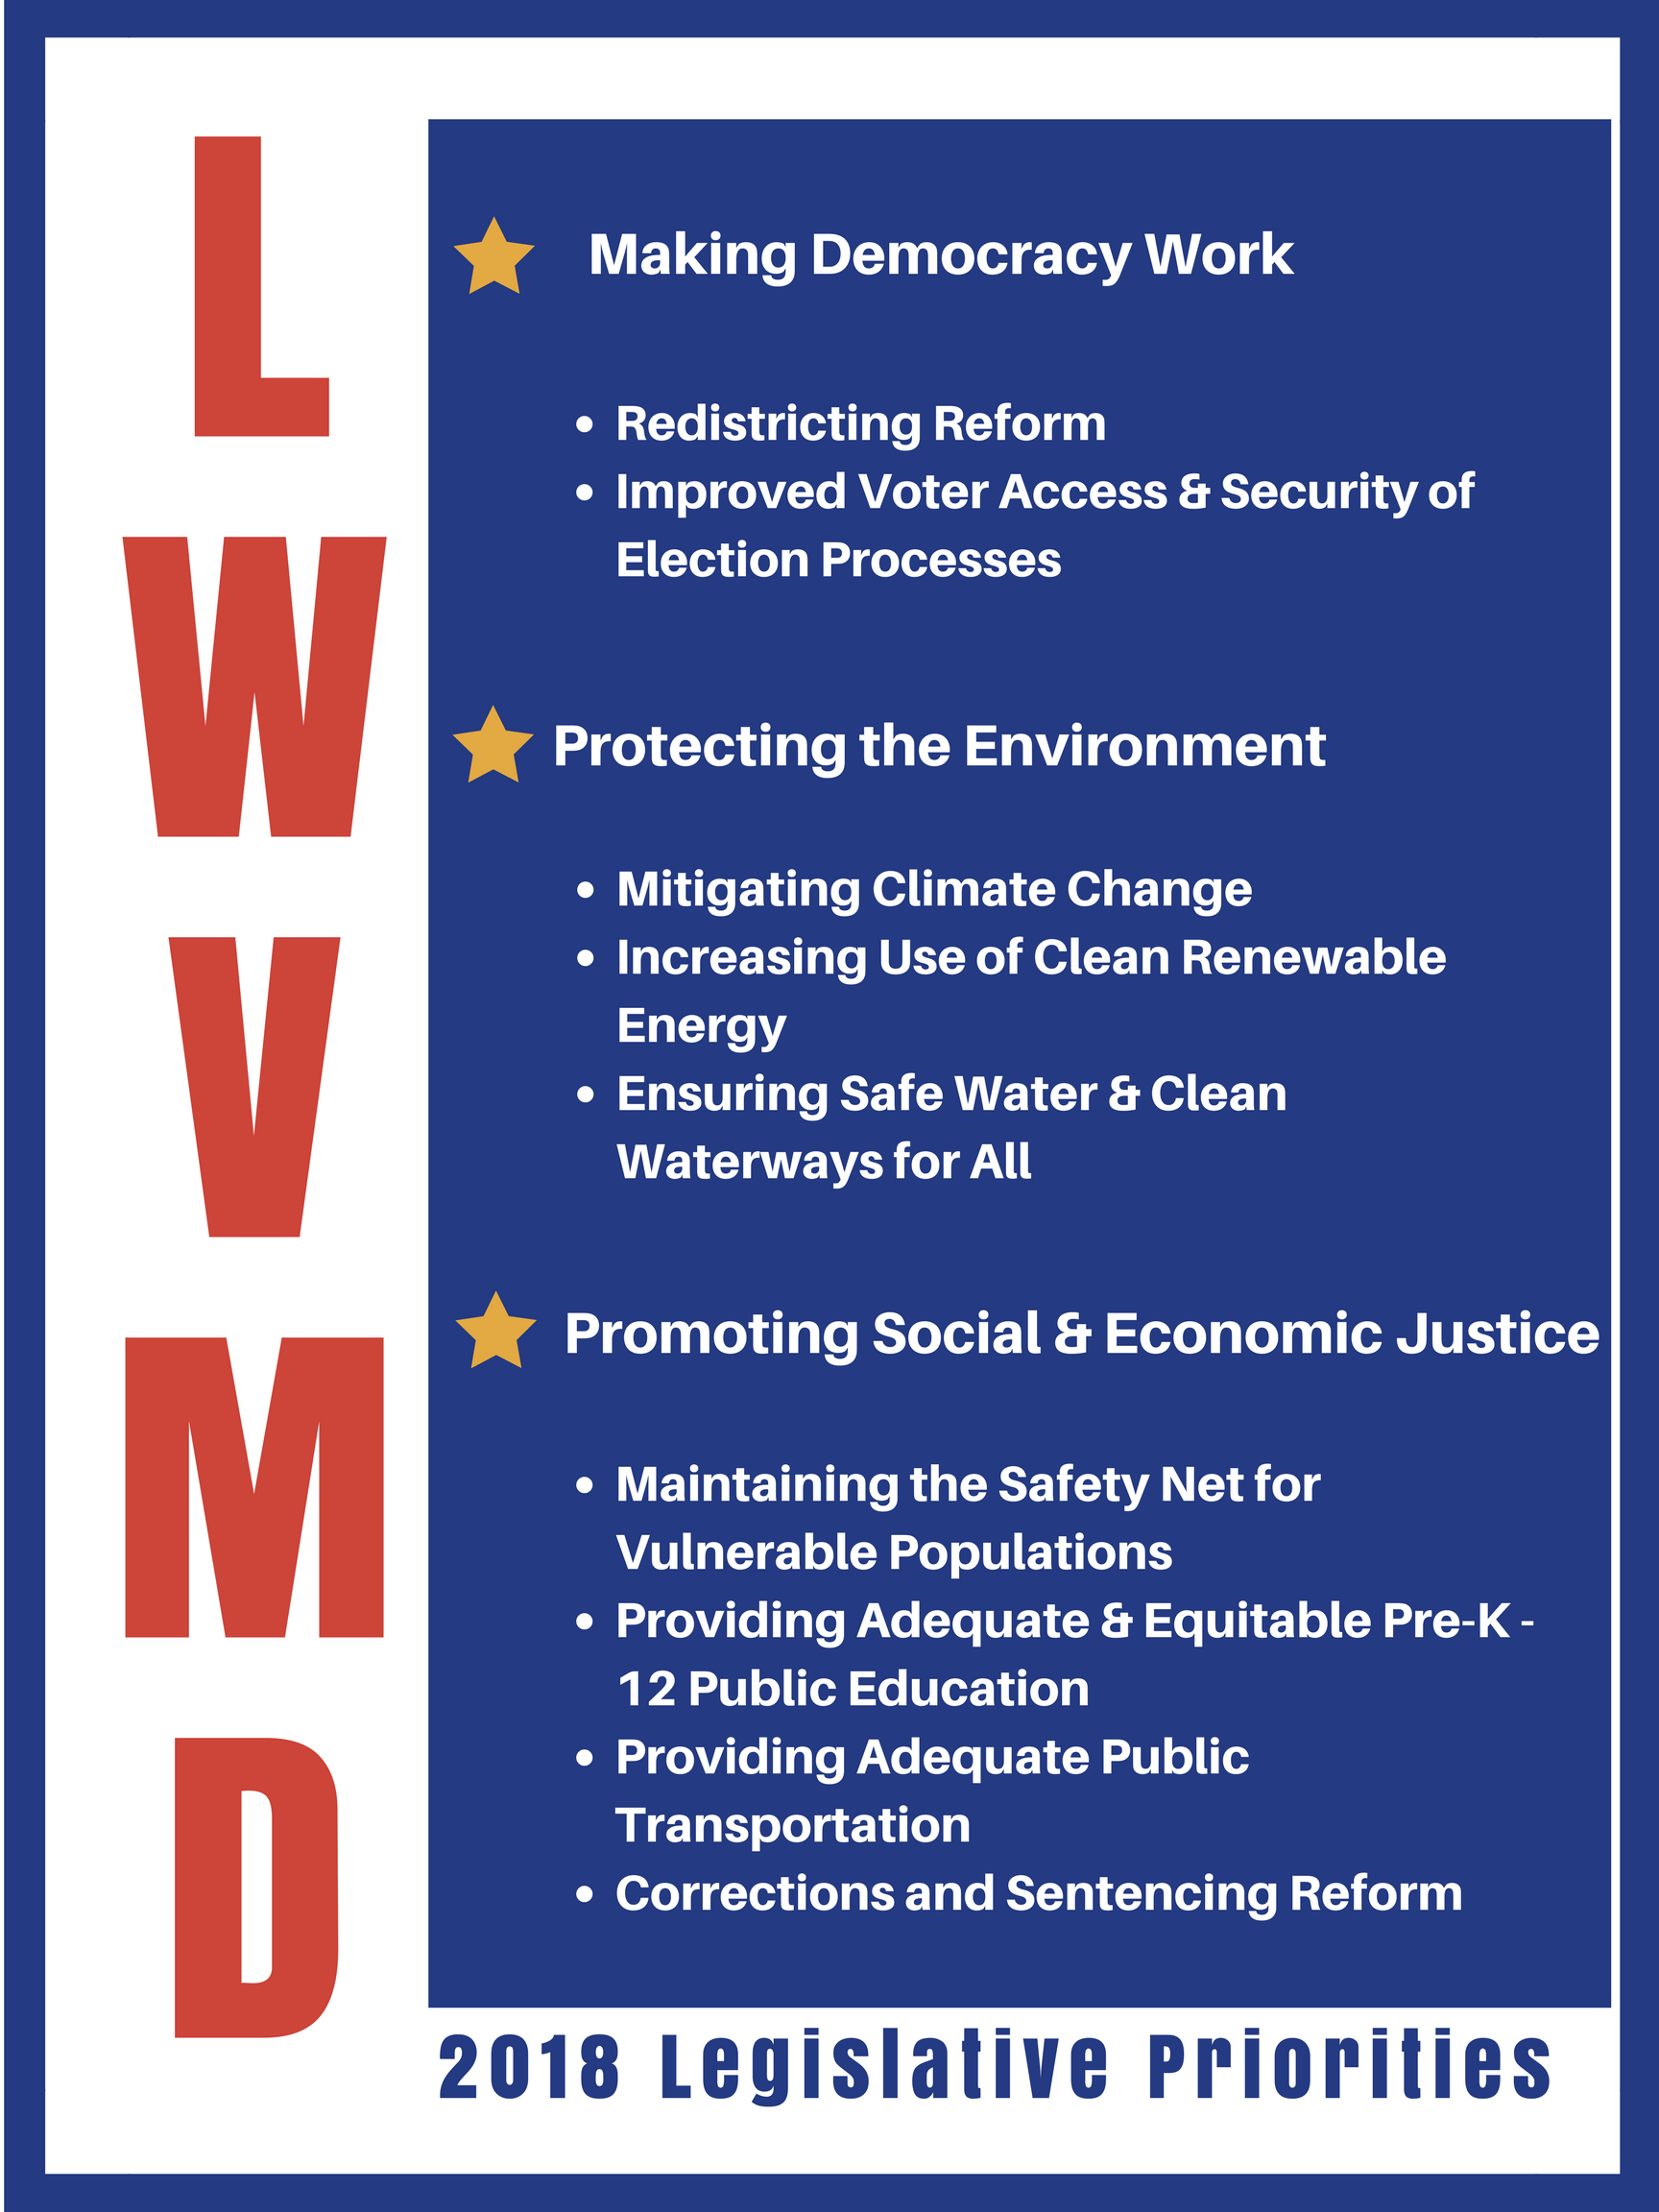 2018 Legislative Priorities